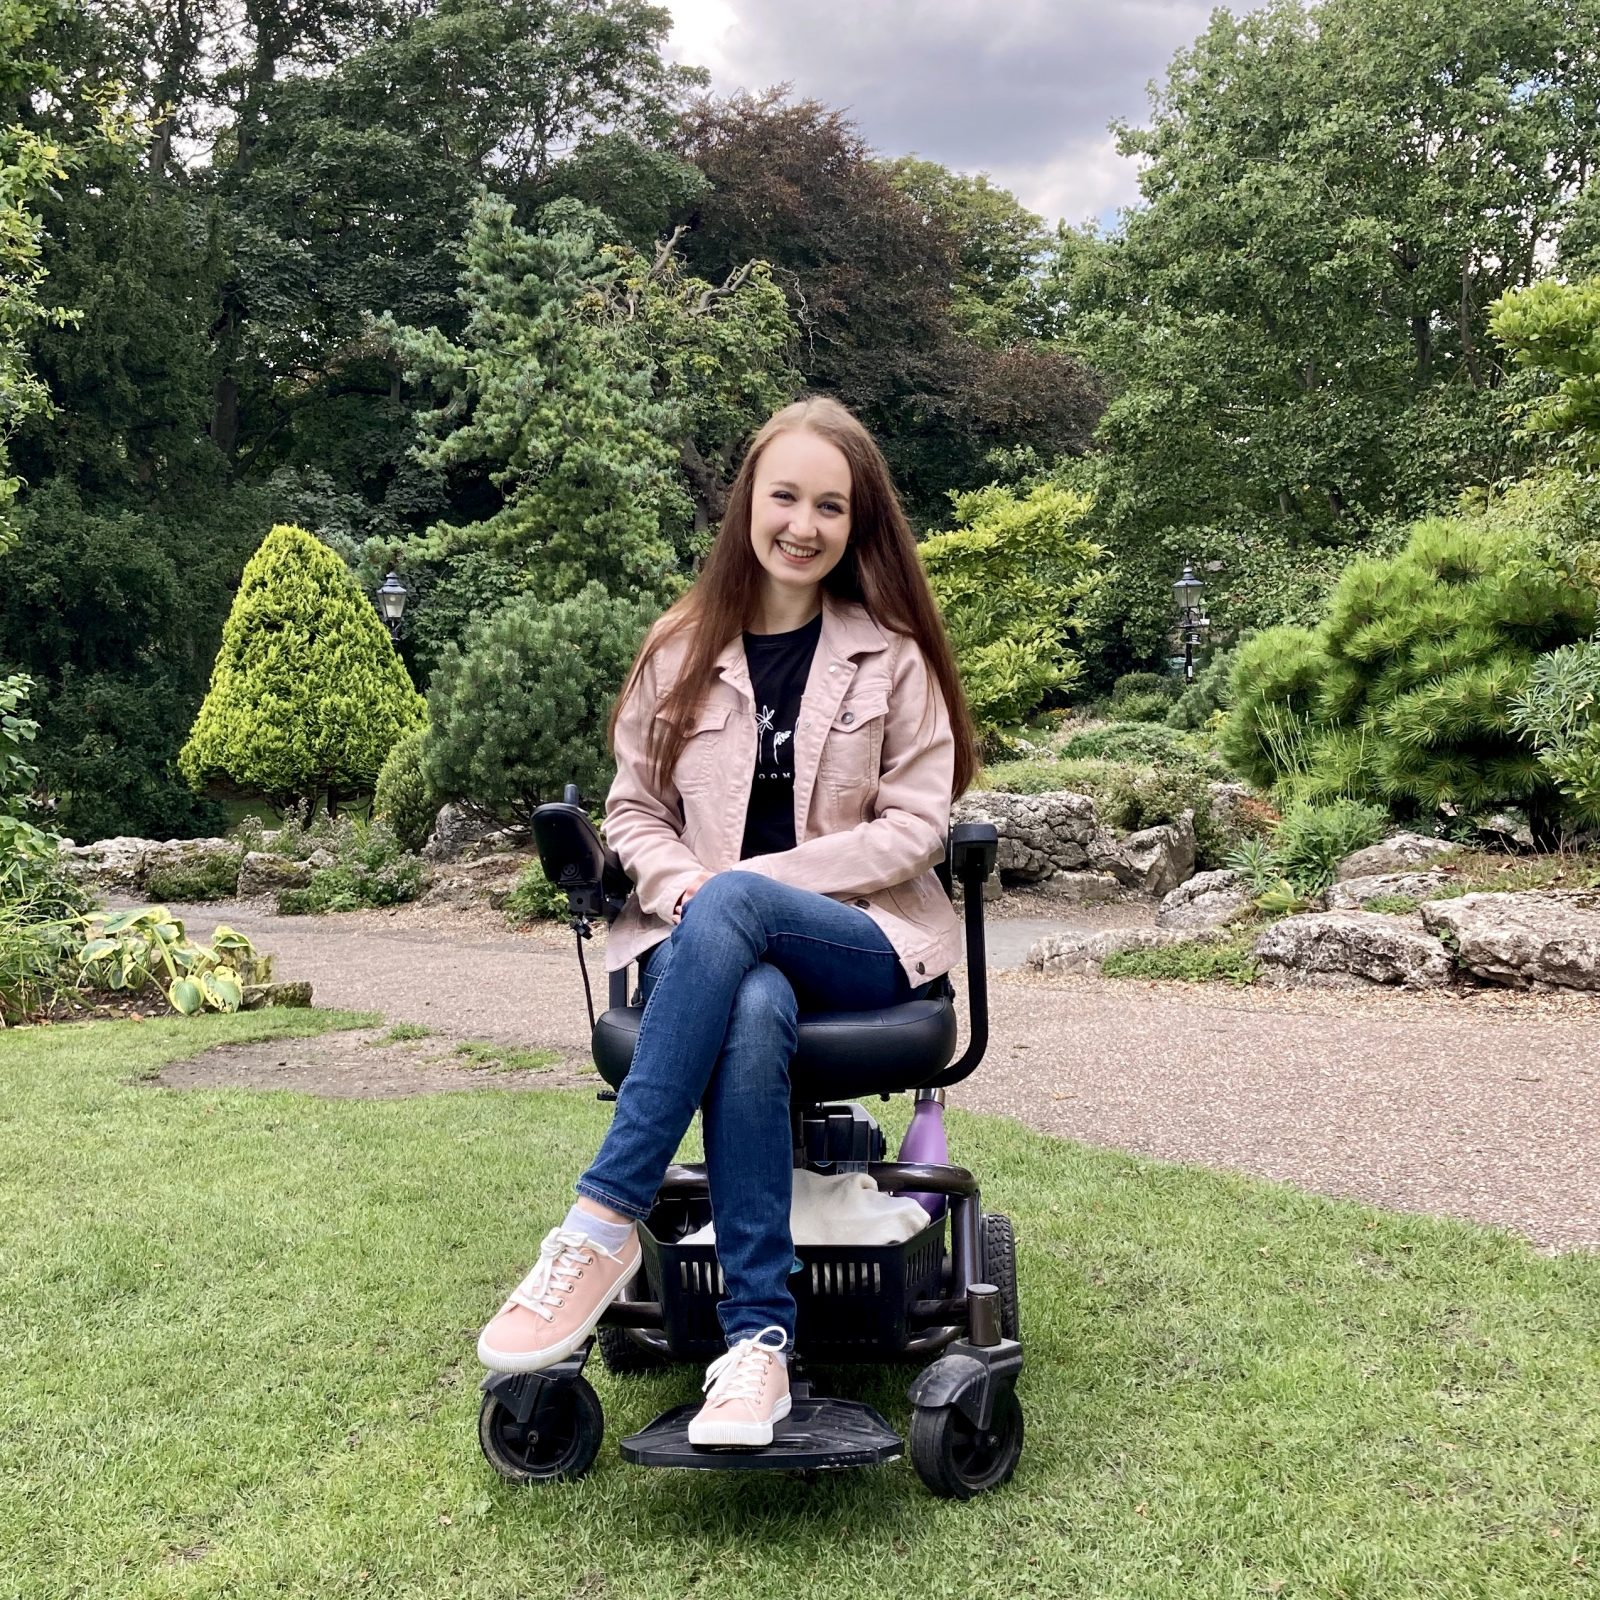 pippa outdoors in york museum gardens, surrounded by trees and grass. pippa is sat in small black electric wheelchair, smiling with hands in lap, wearing pale pink denim jacket and jeans.